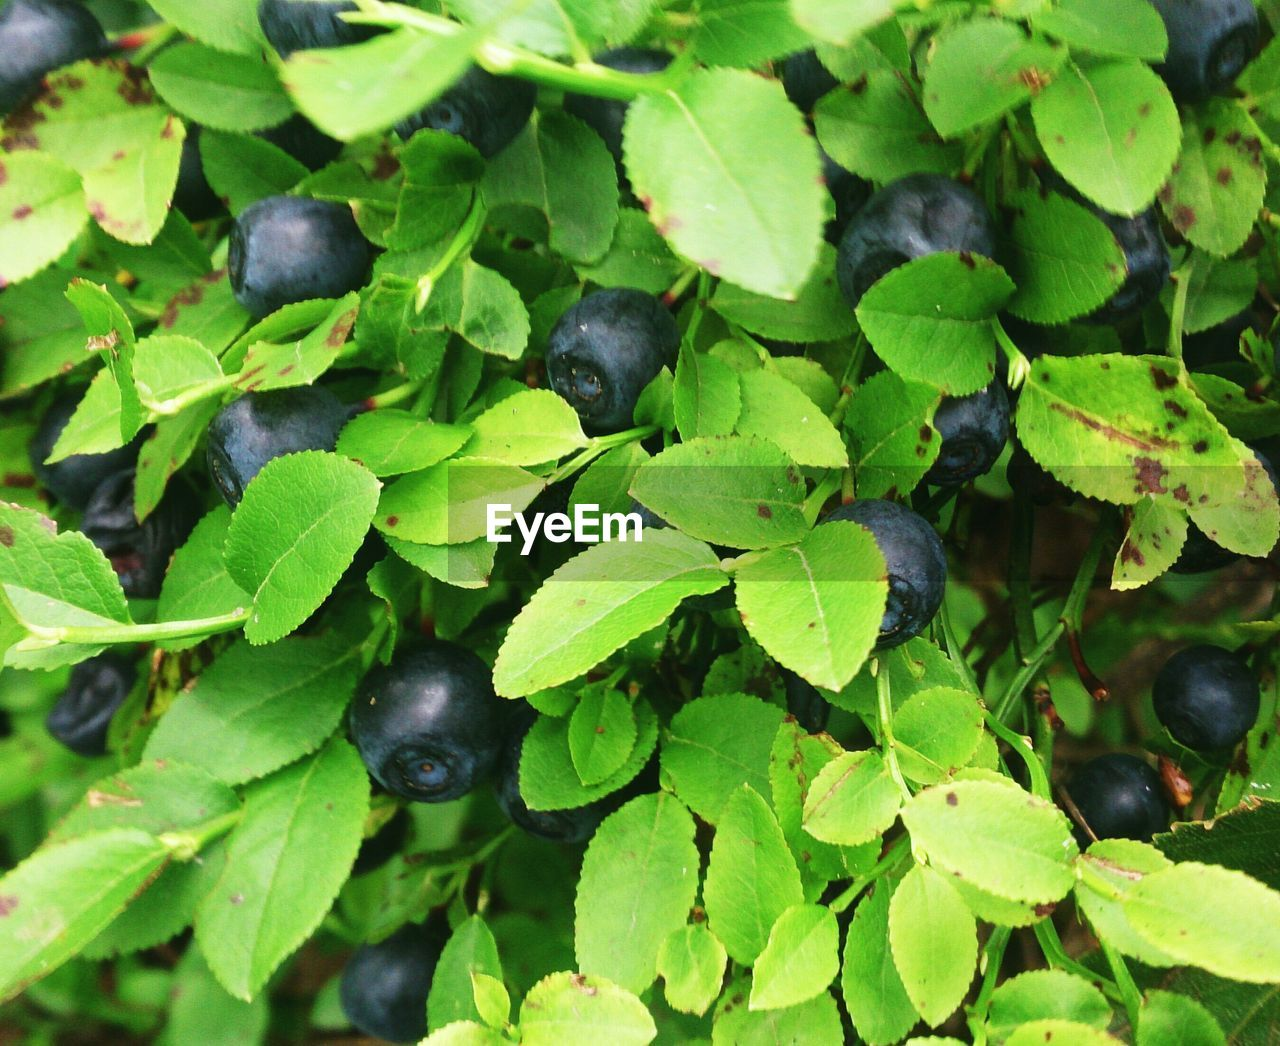 plant part, leaf, green color, growth, plant, food, nature, freshness, food and drink, healthy eating, close-up, no people, day, full frame, black color, blueberry, fruit, high angle view, wellbeing, backgrounds, outdoors, ripe, leaves